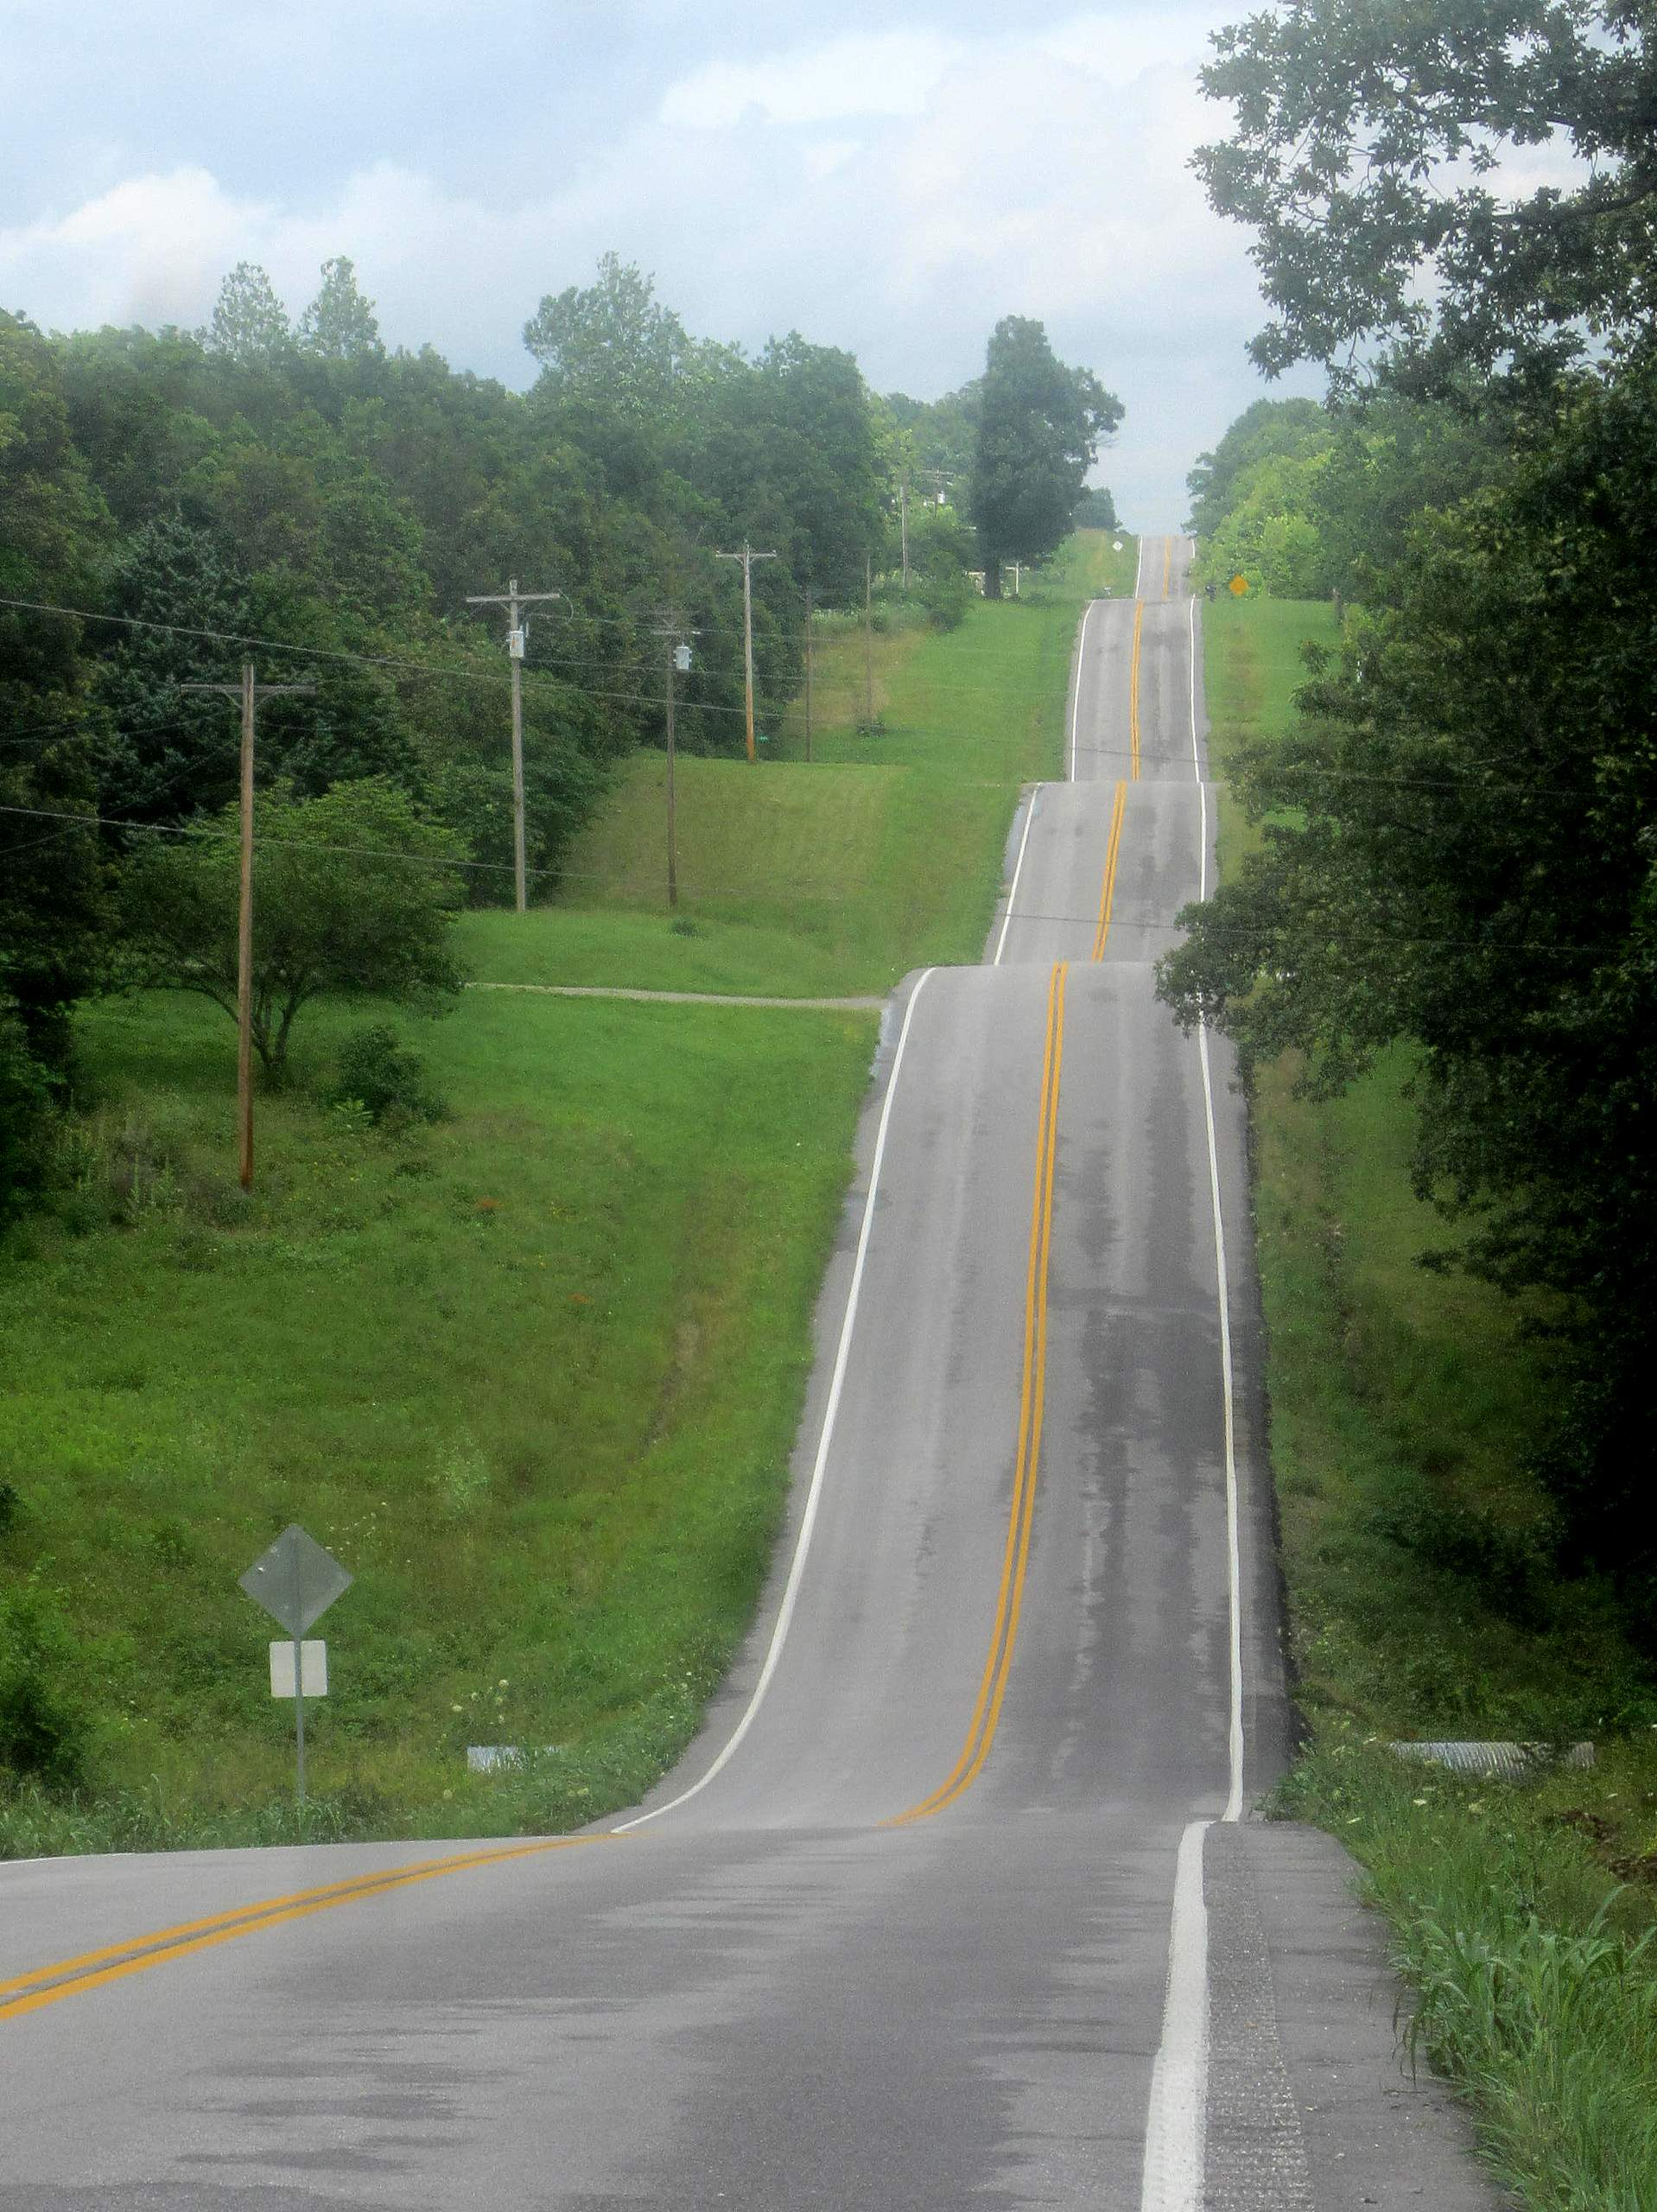 Roller coaster roads in the Ozark Hills.